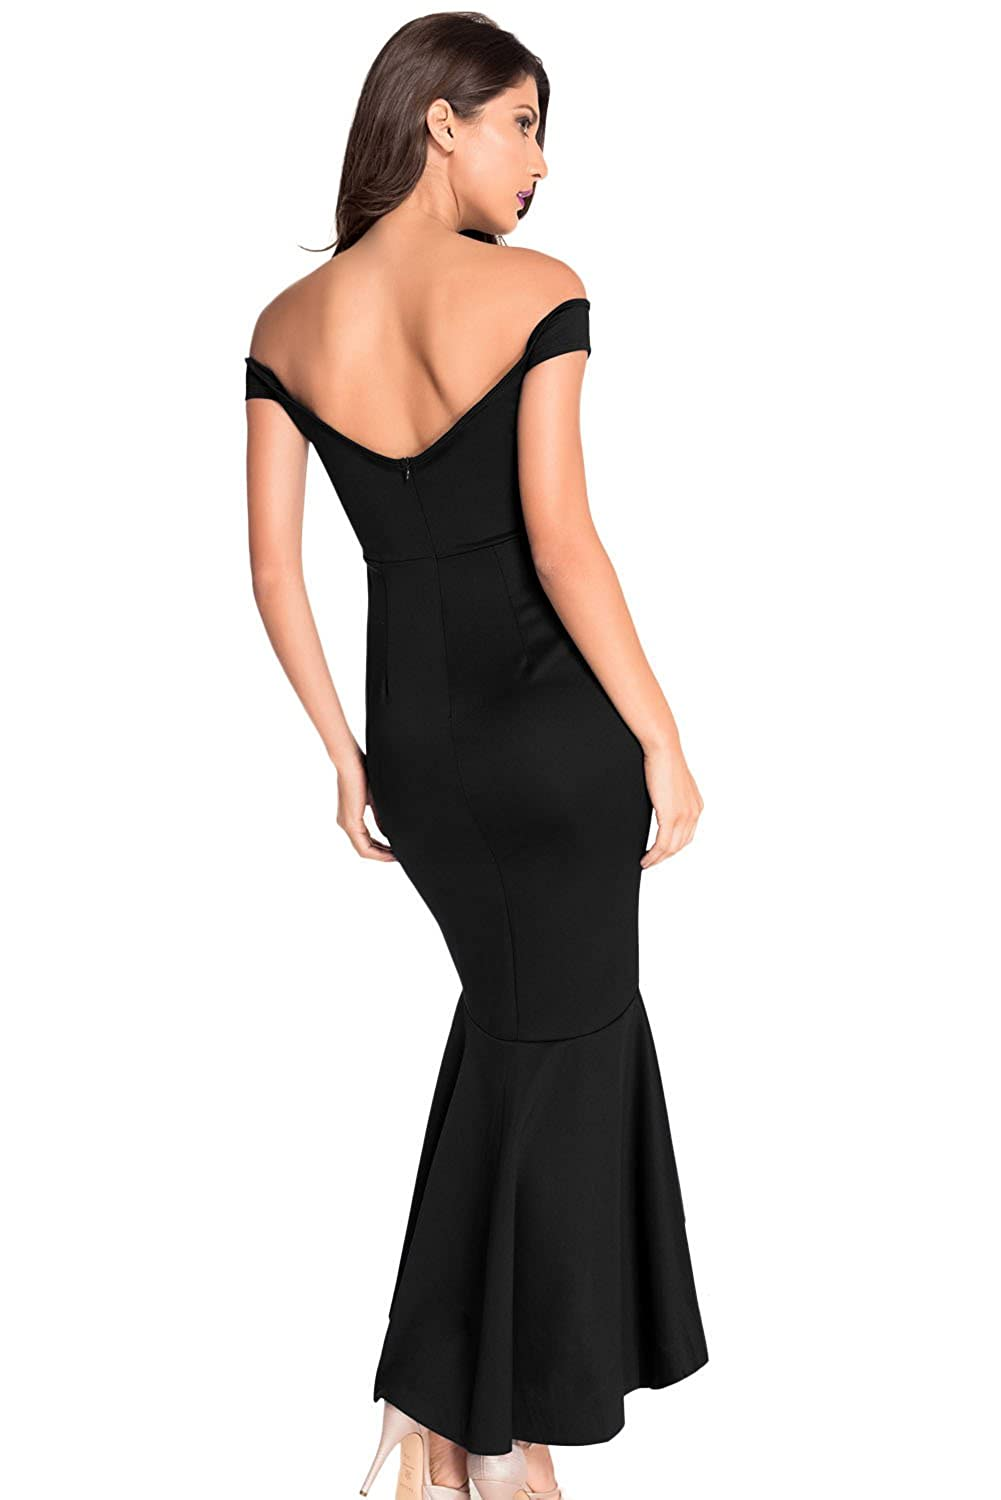 50cfb866d0 Amazon.com: Astylish Womens Evening Dress Off Shoulder Flouncing Mermaid  Formal Prom Gowns: Clothing